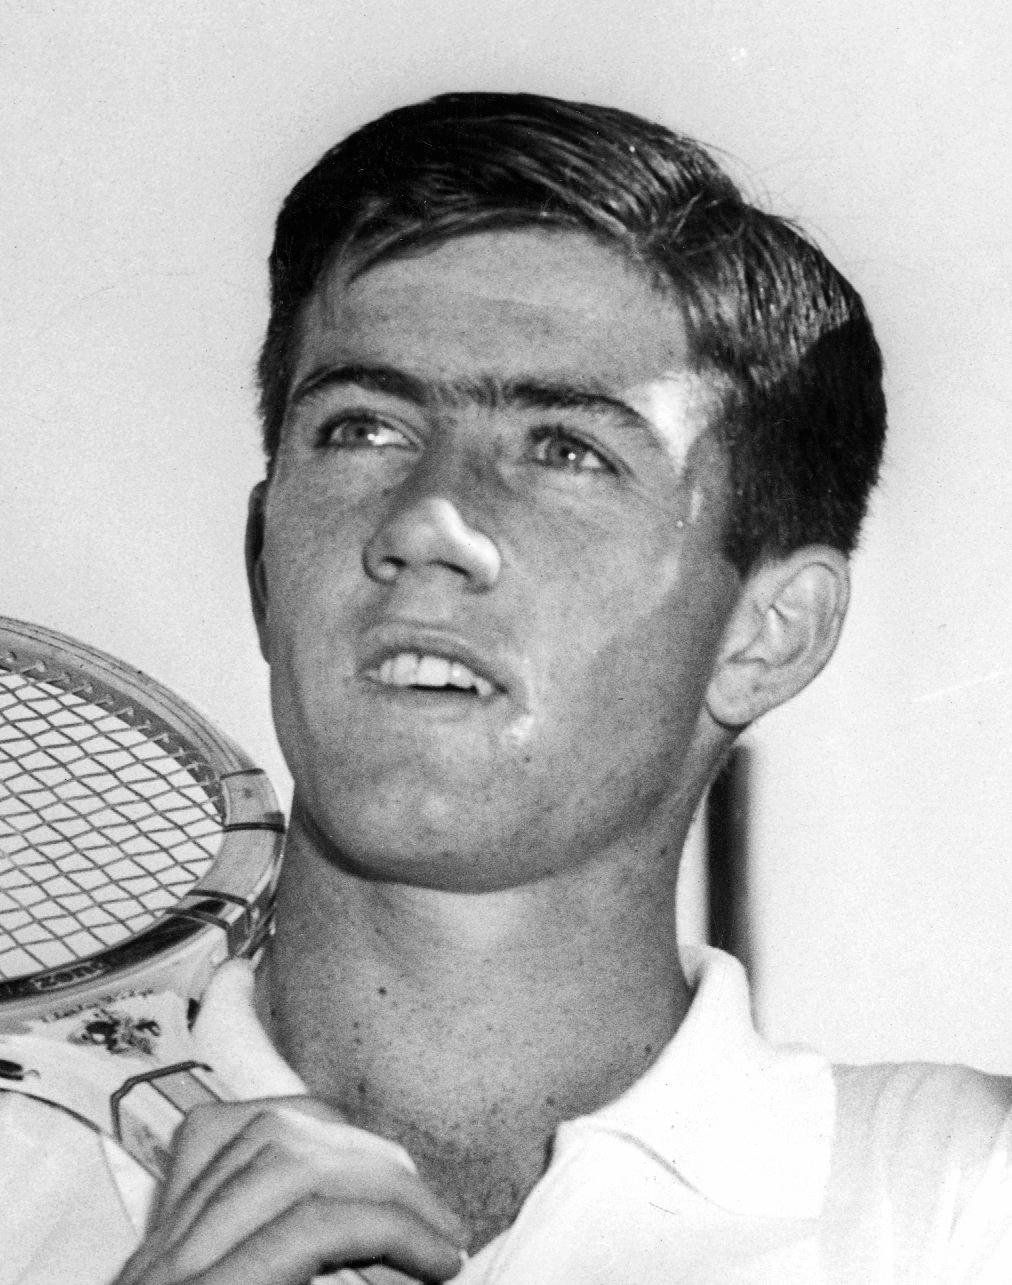 Ken Rosewall won a record 25 tennis Majors including 8 Grand Slam singles titles, and is considered to be one of the top male tennis players of all time.